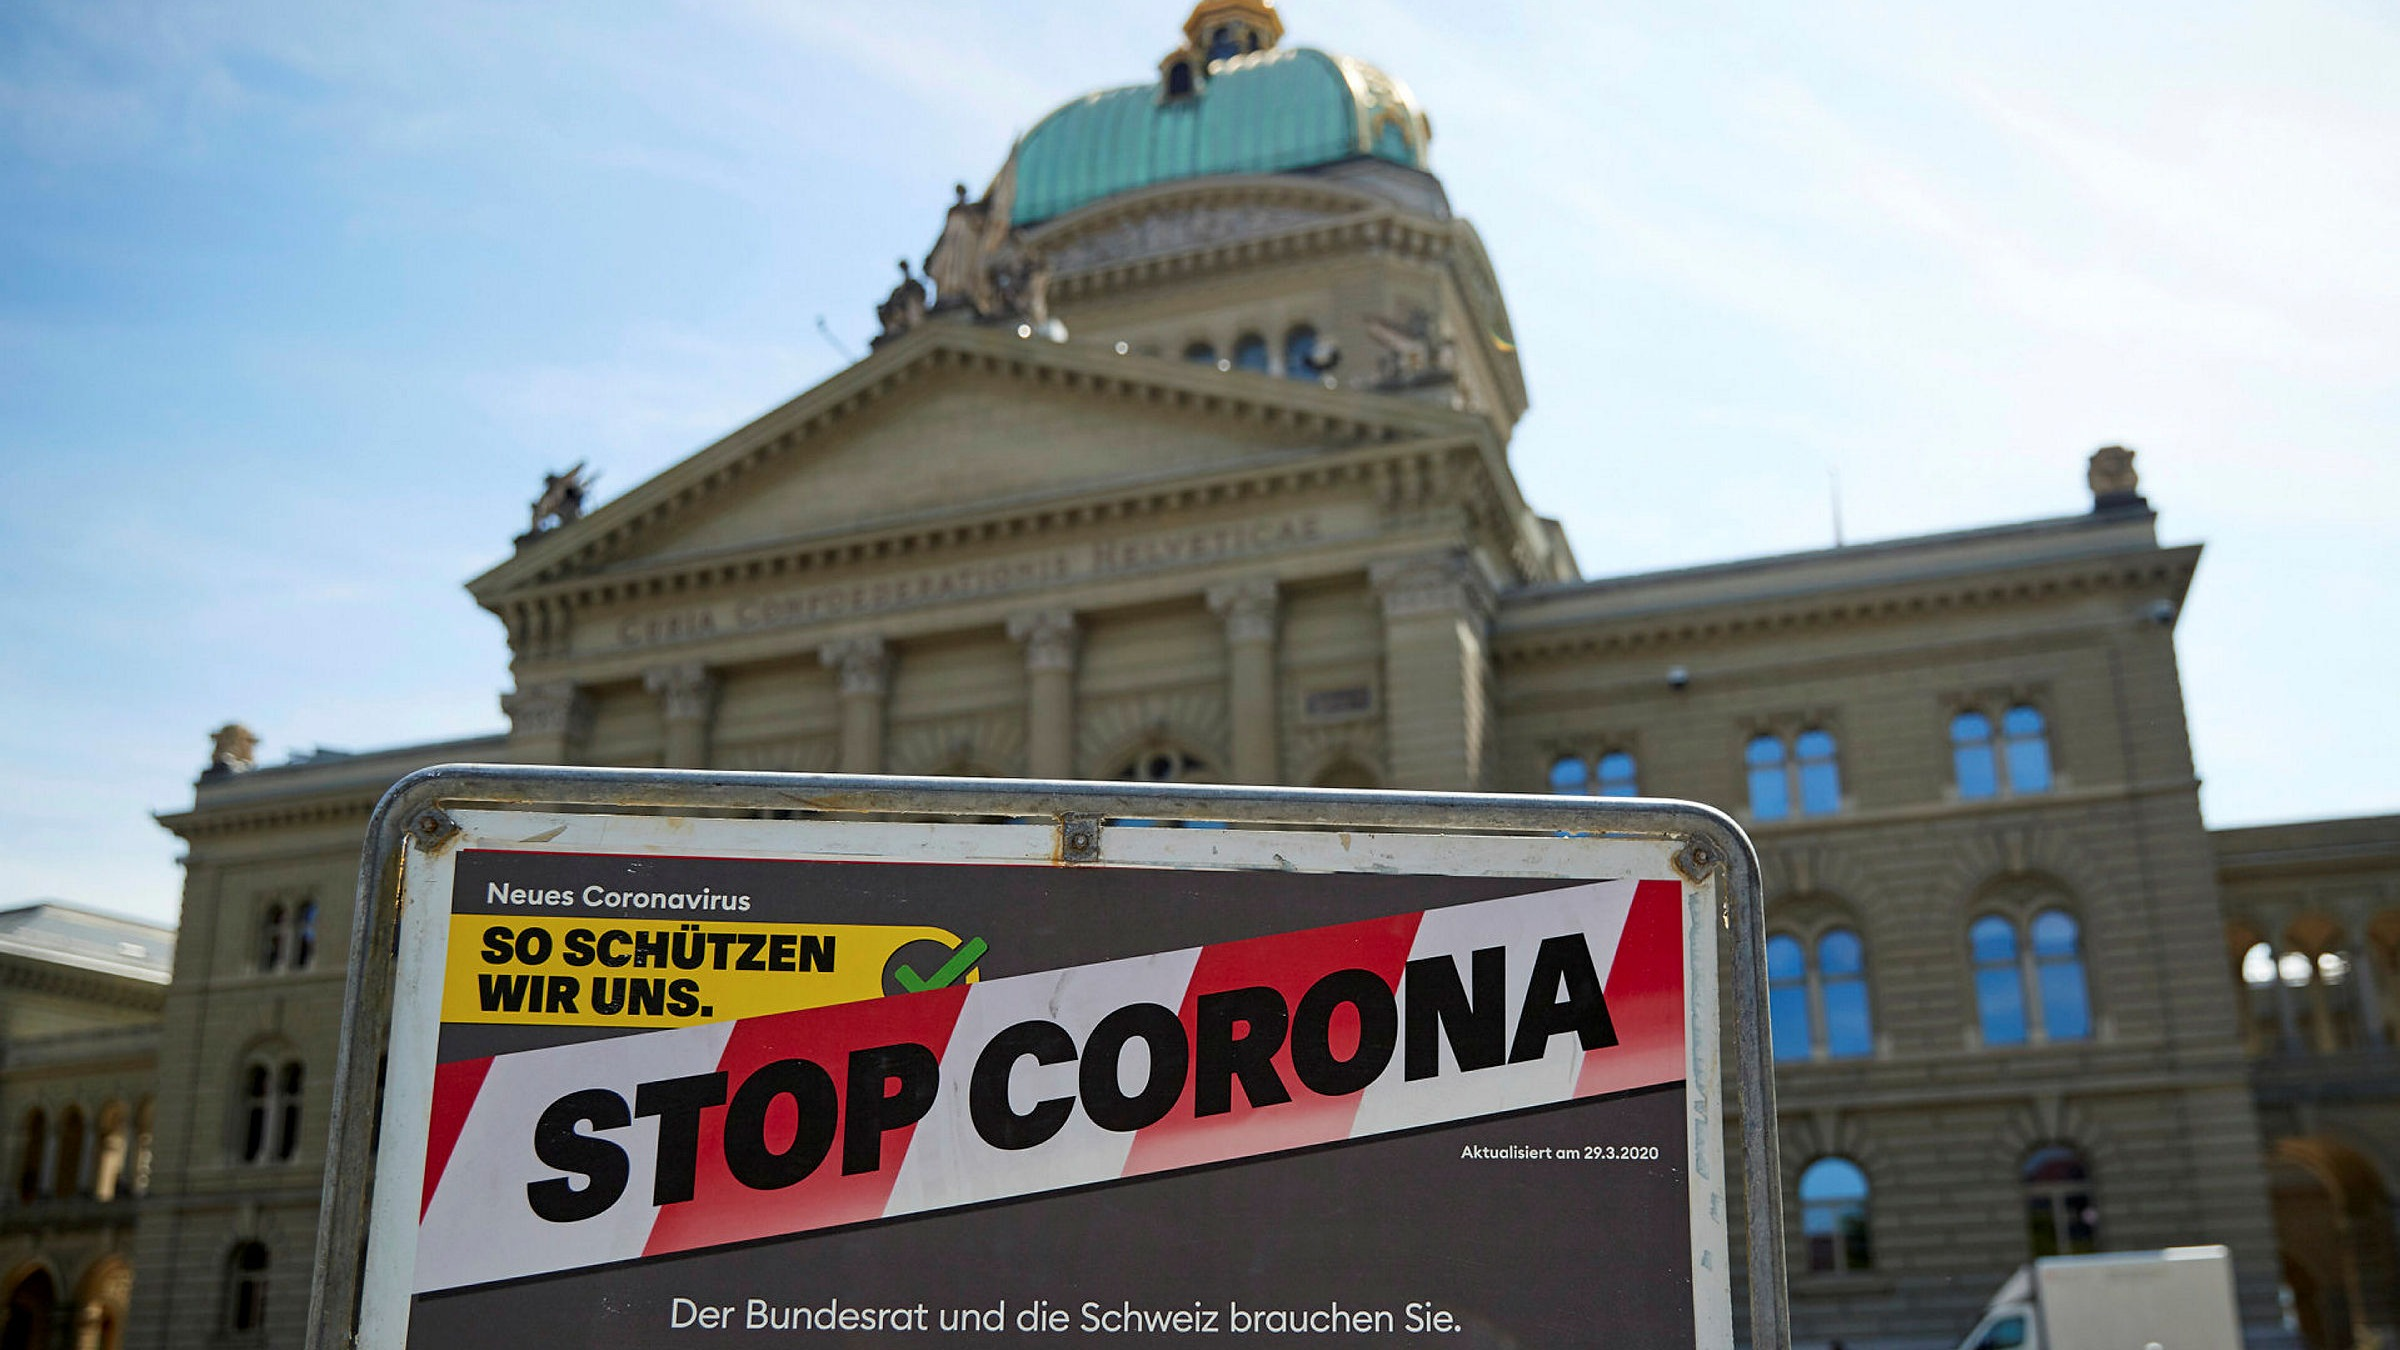 Coronavirus puts Swiss political system to the test | Financial Times